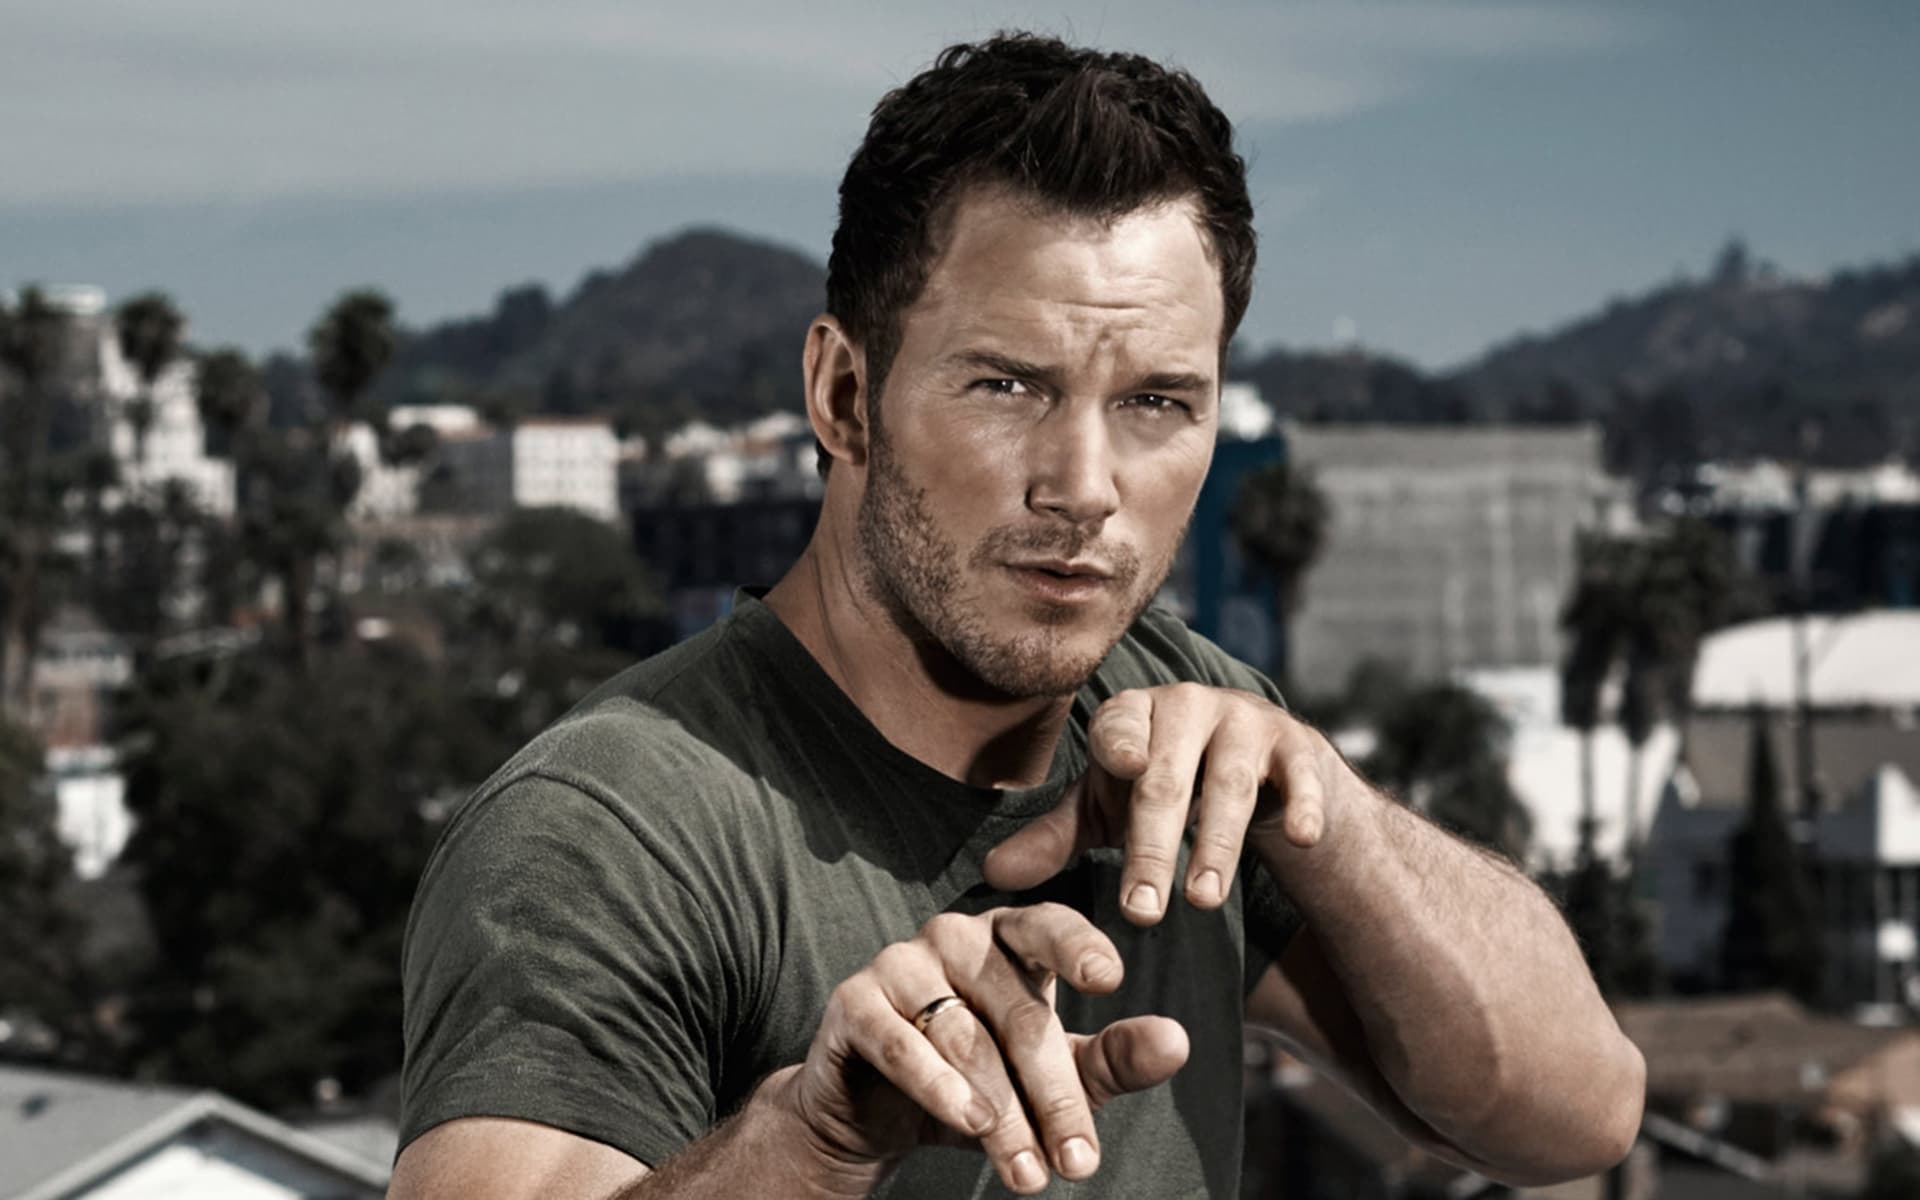 Chris Pratt cool HD wallpaper for Desktop